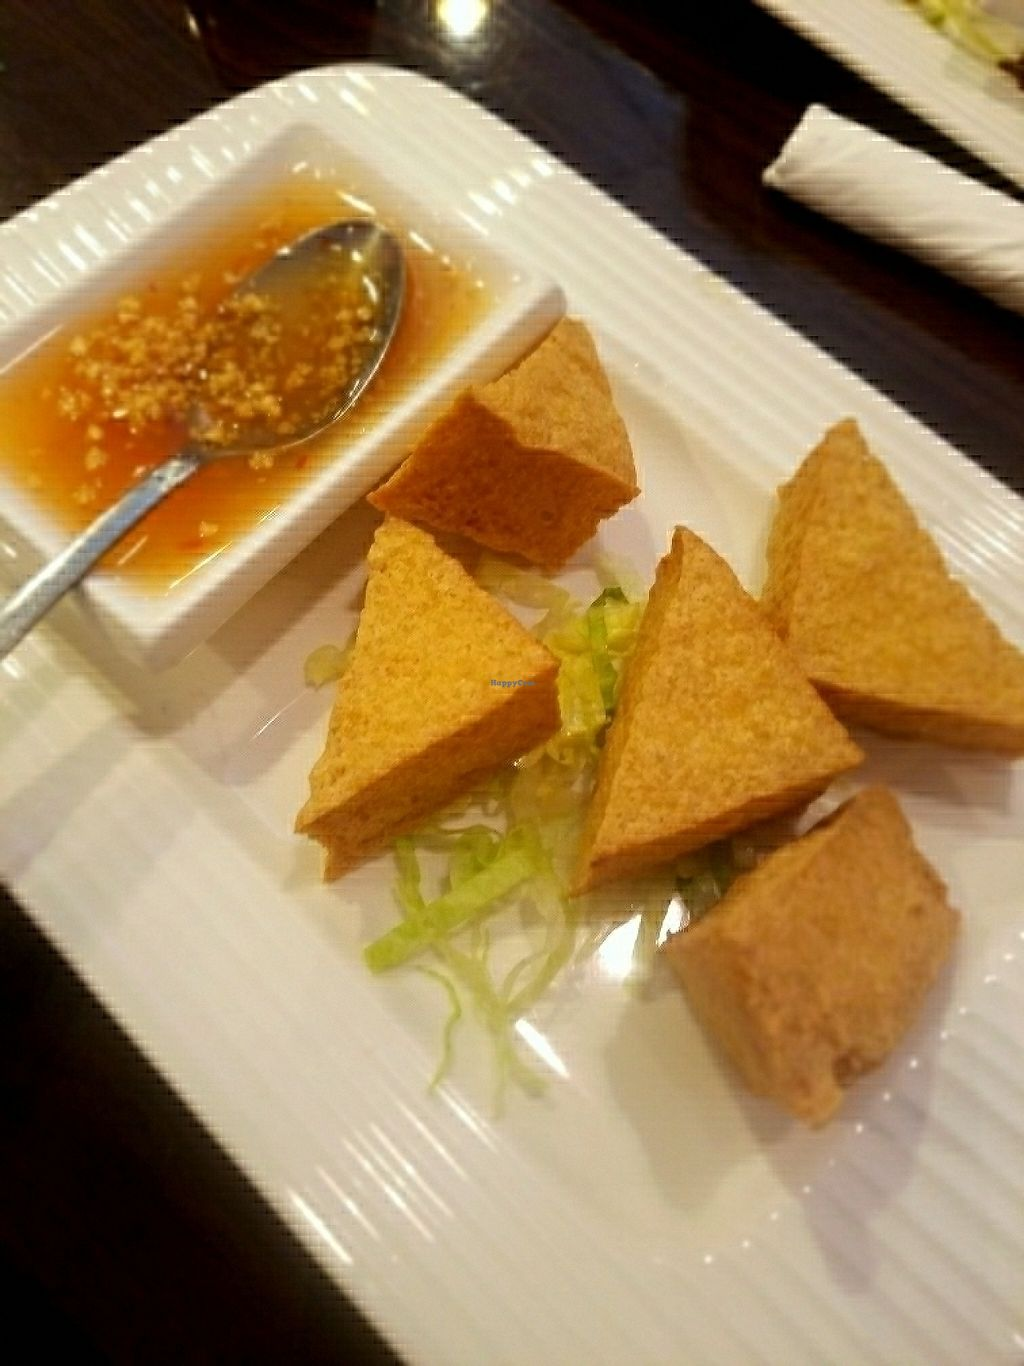 """Photo of Thai Mango Asian Bistro  by <a href=""""/members/profile/Silly%20Little%20Vegan"""">Silly Little Vegan</a> <br/>Tofu appetizer  <br/> May 31, 2017  - <a href='/contact/abuse/image/37692/264651'>Report</a>"""